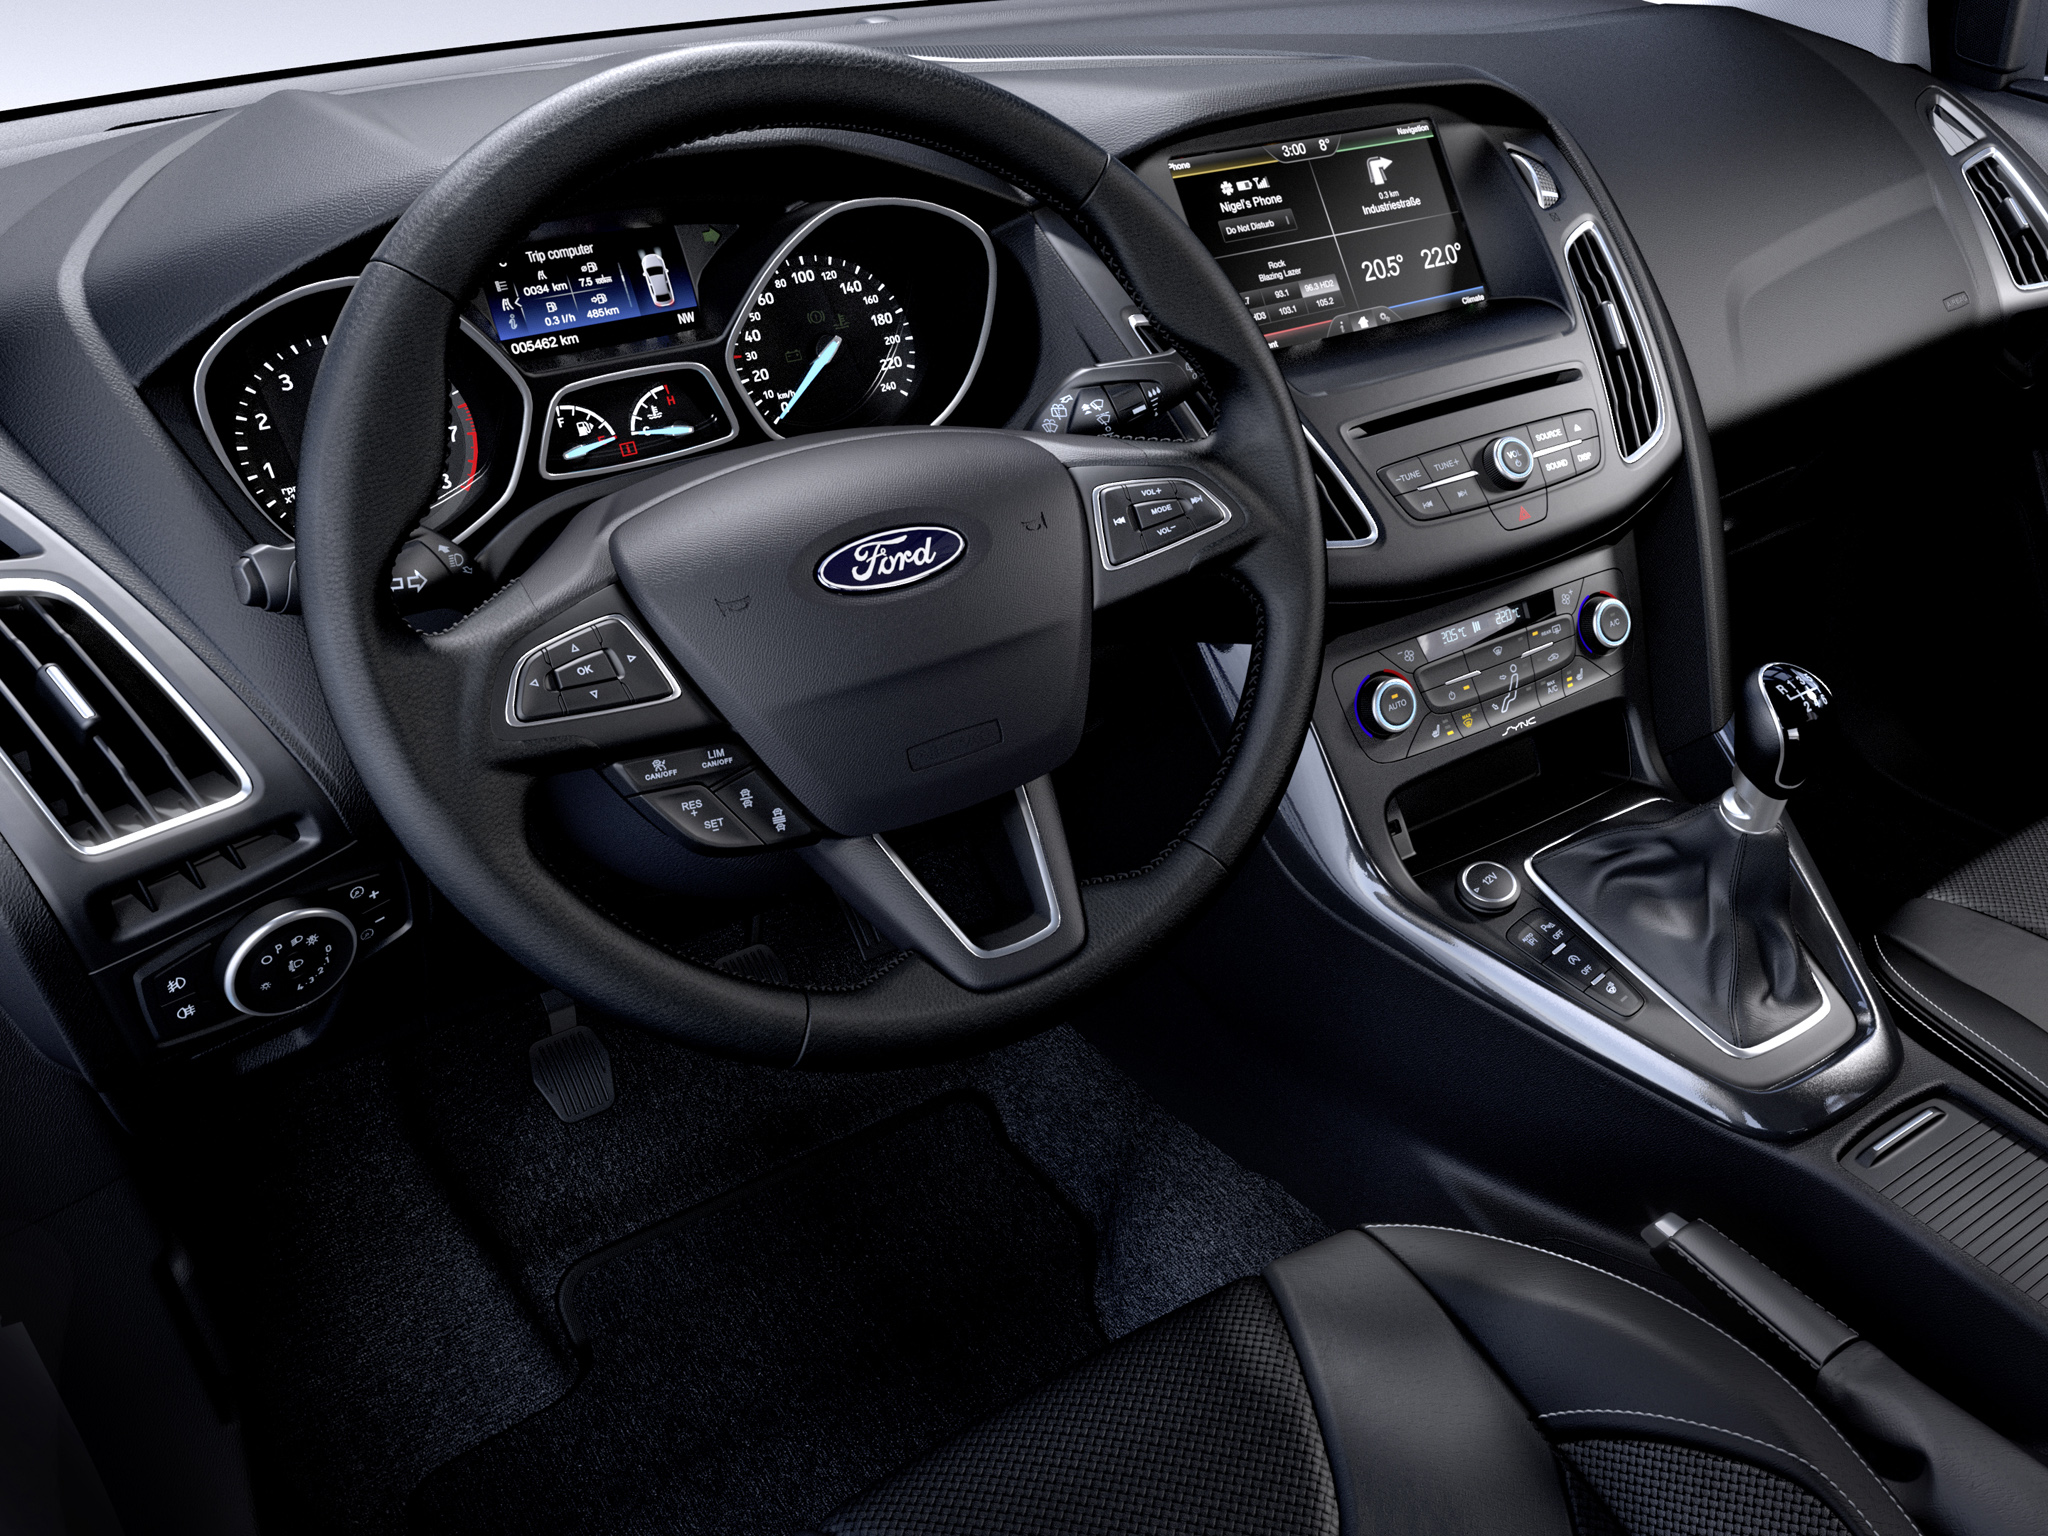 Ford Focus Wheels >> 2014 Ford Focus Estate / Touring Leaked Photos Show New ...